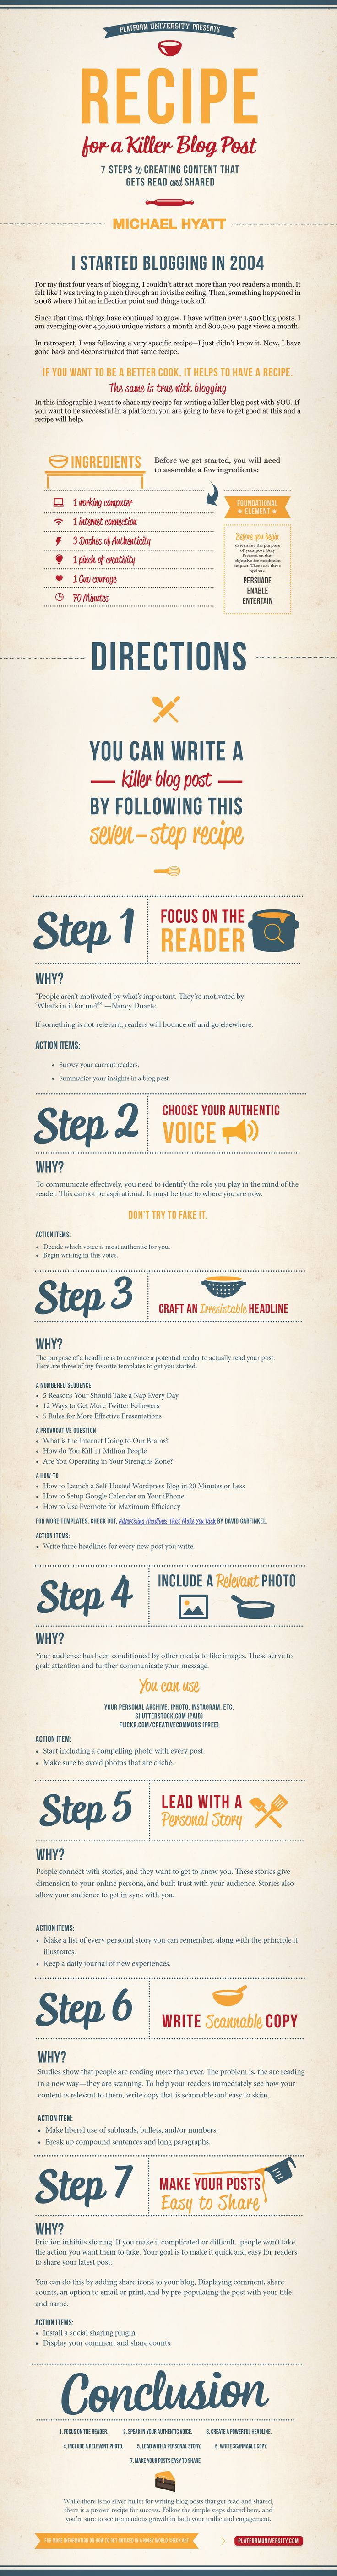 Recipe for a Killer Blog Post...AMAZING BLOGGING RESOURCE from Michael Hyatt from tonight's sold-out webinar!!!